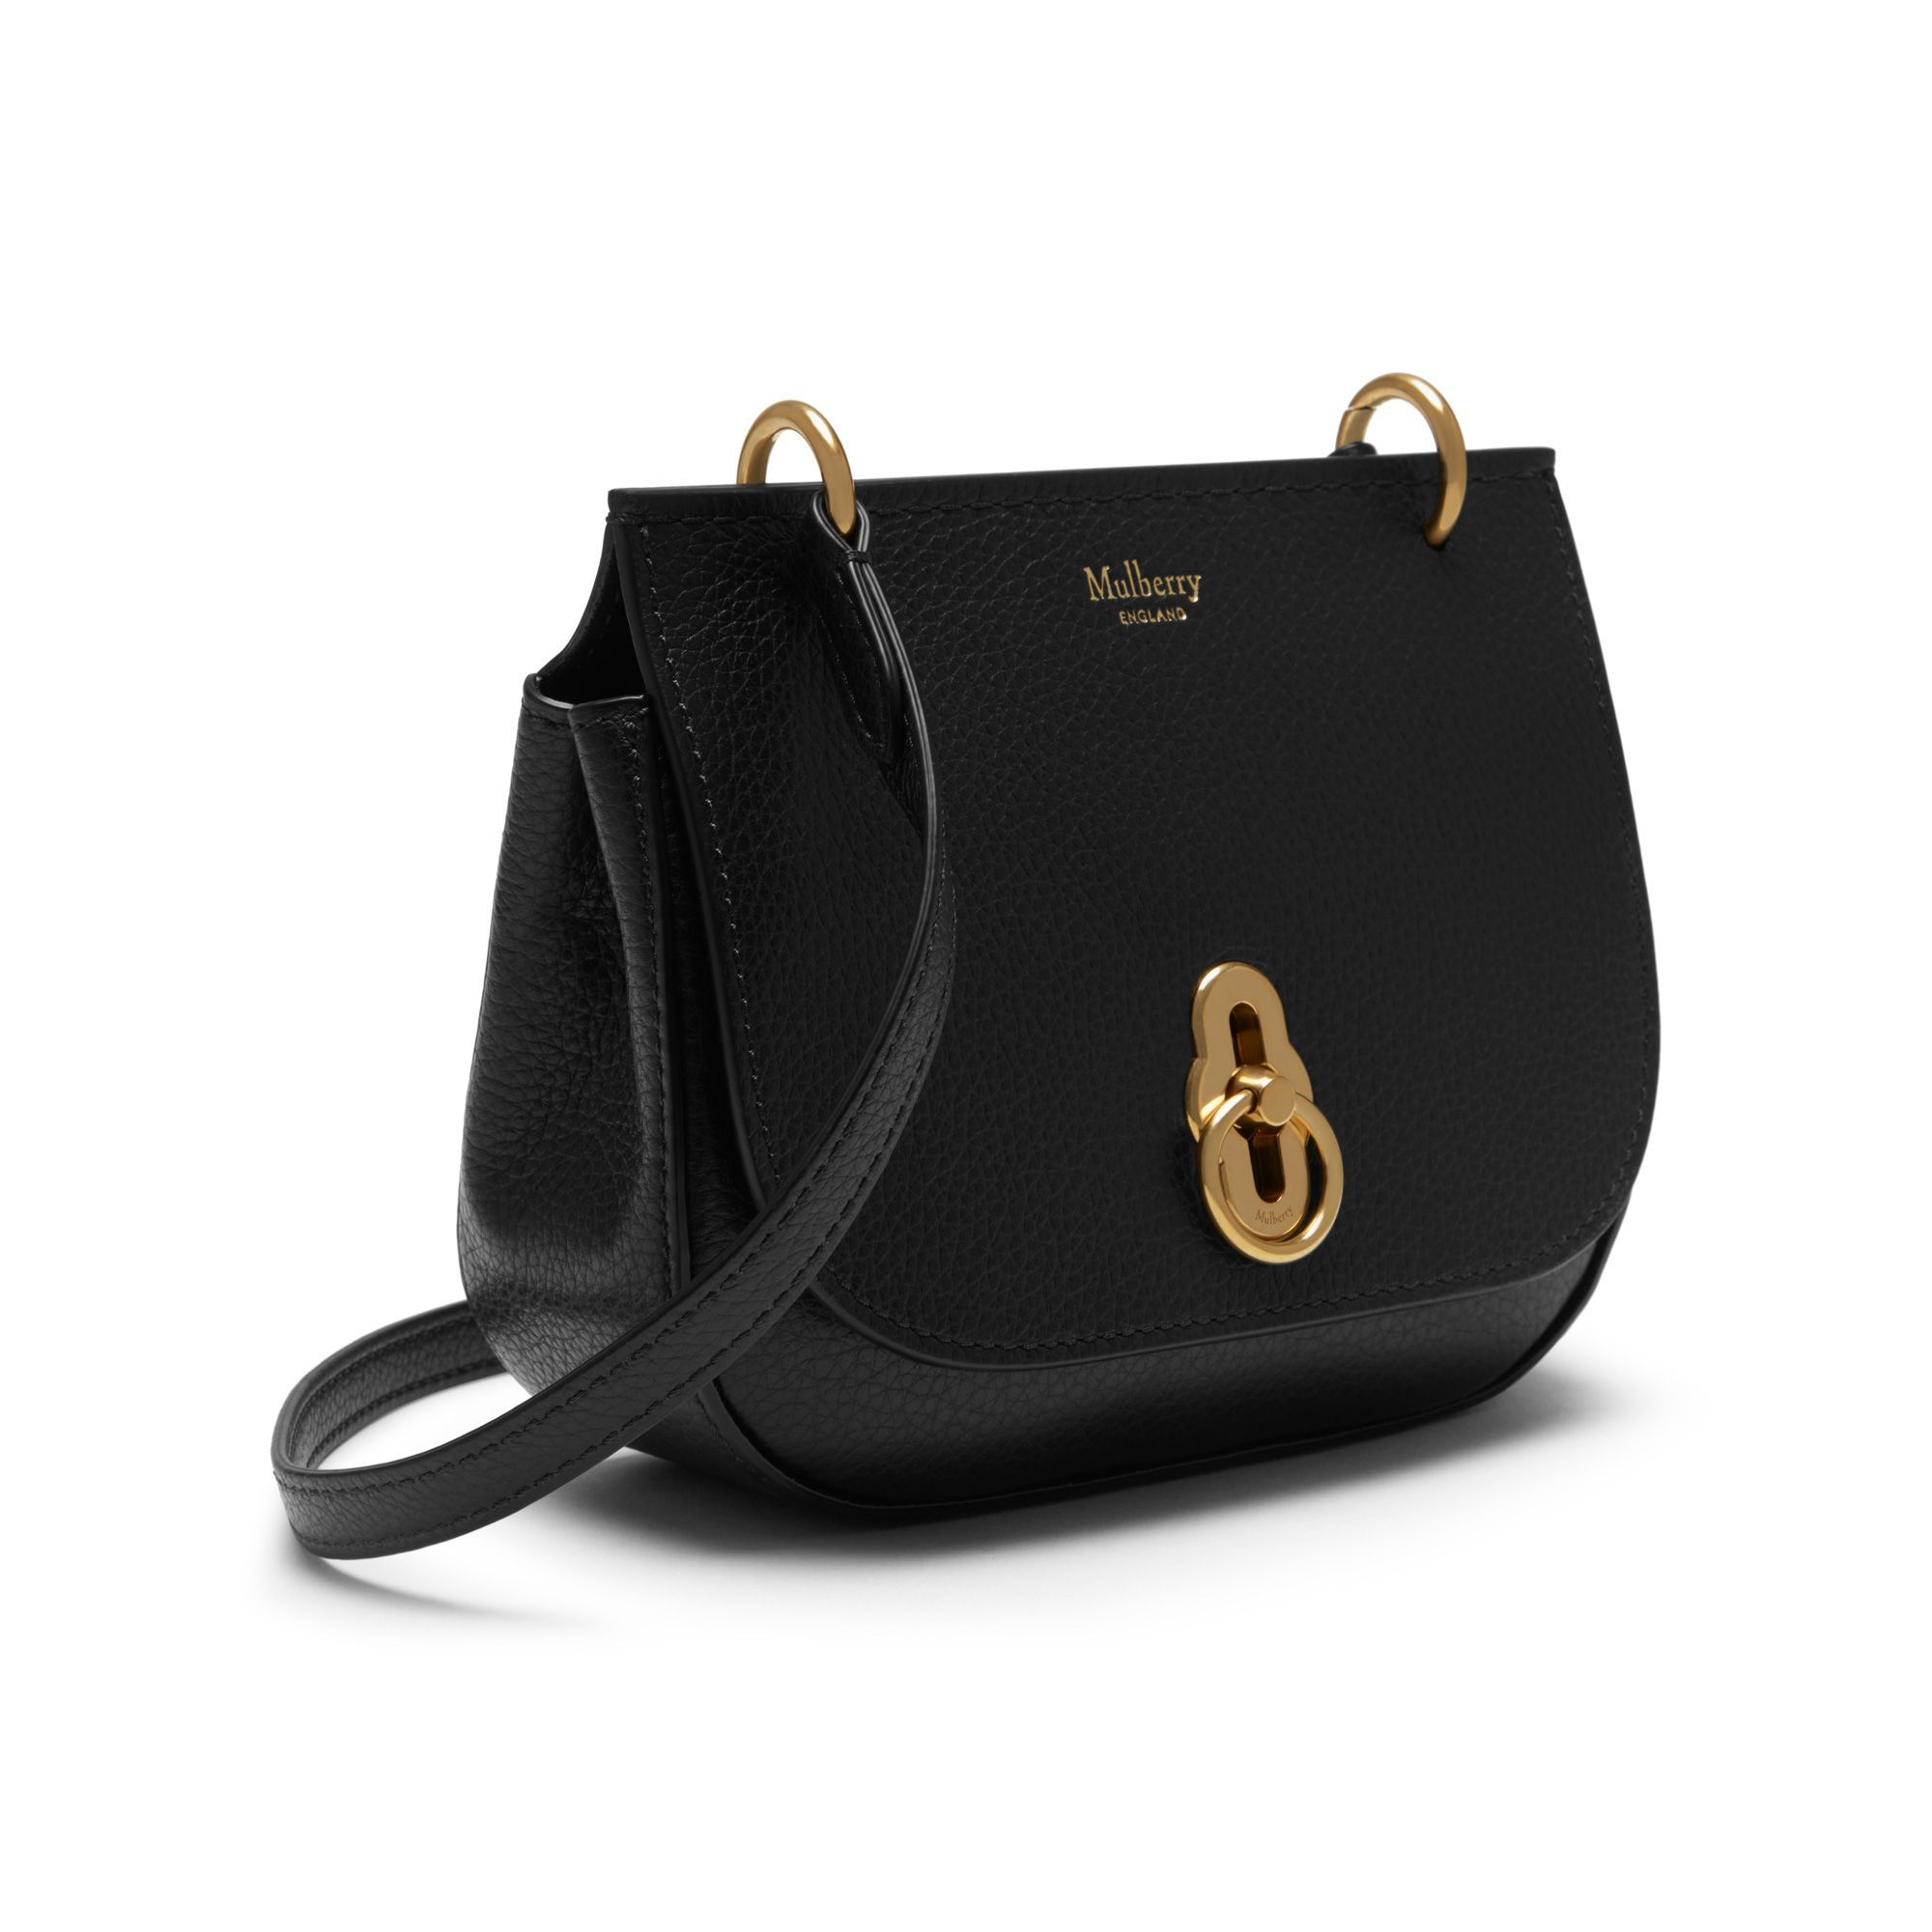 Mulberry Amberley grained leather mini bag